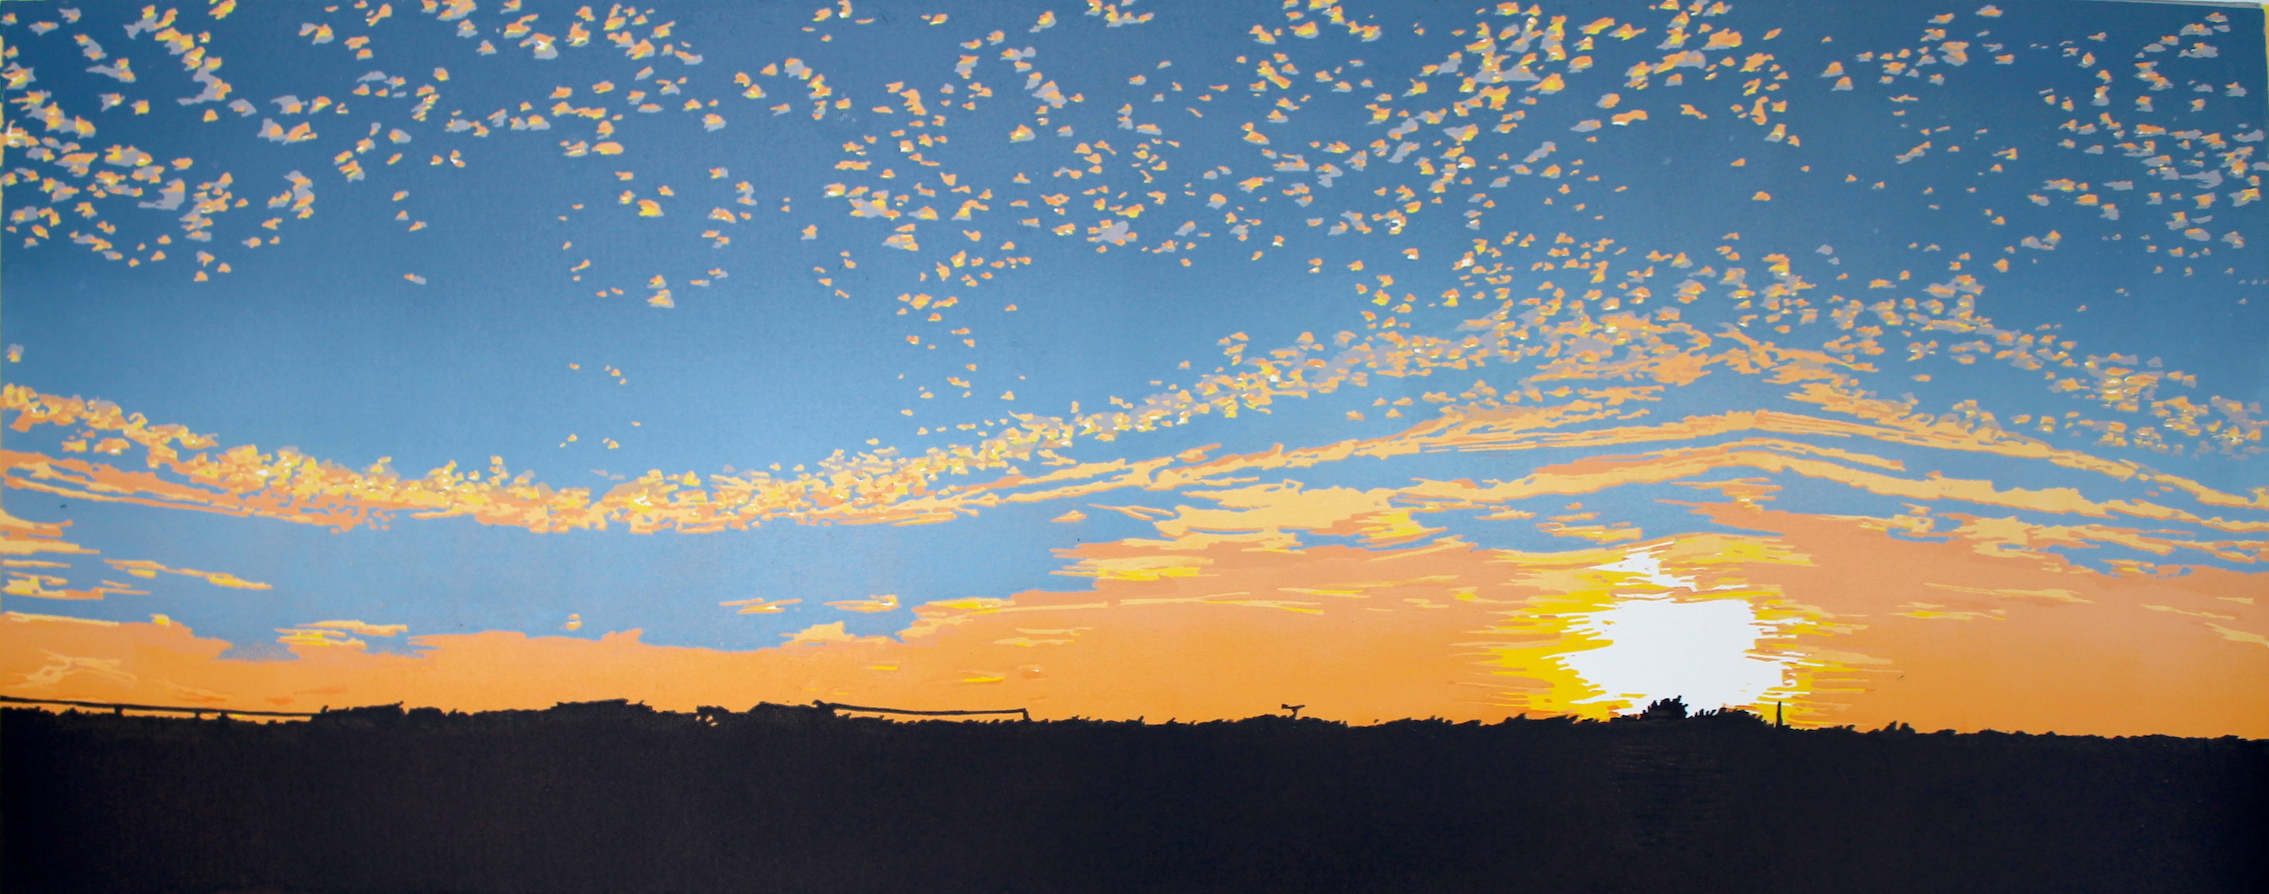 October Dusk  reduction  linocut   43 x 86cm image size  £280